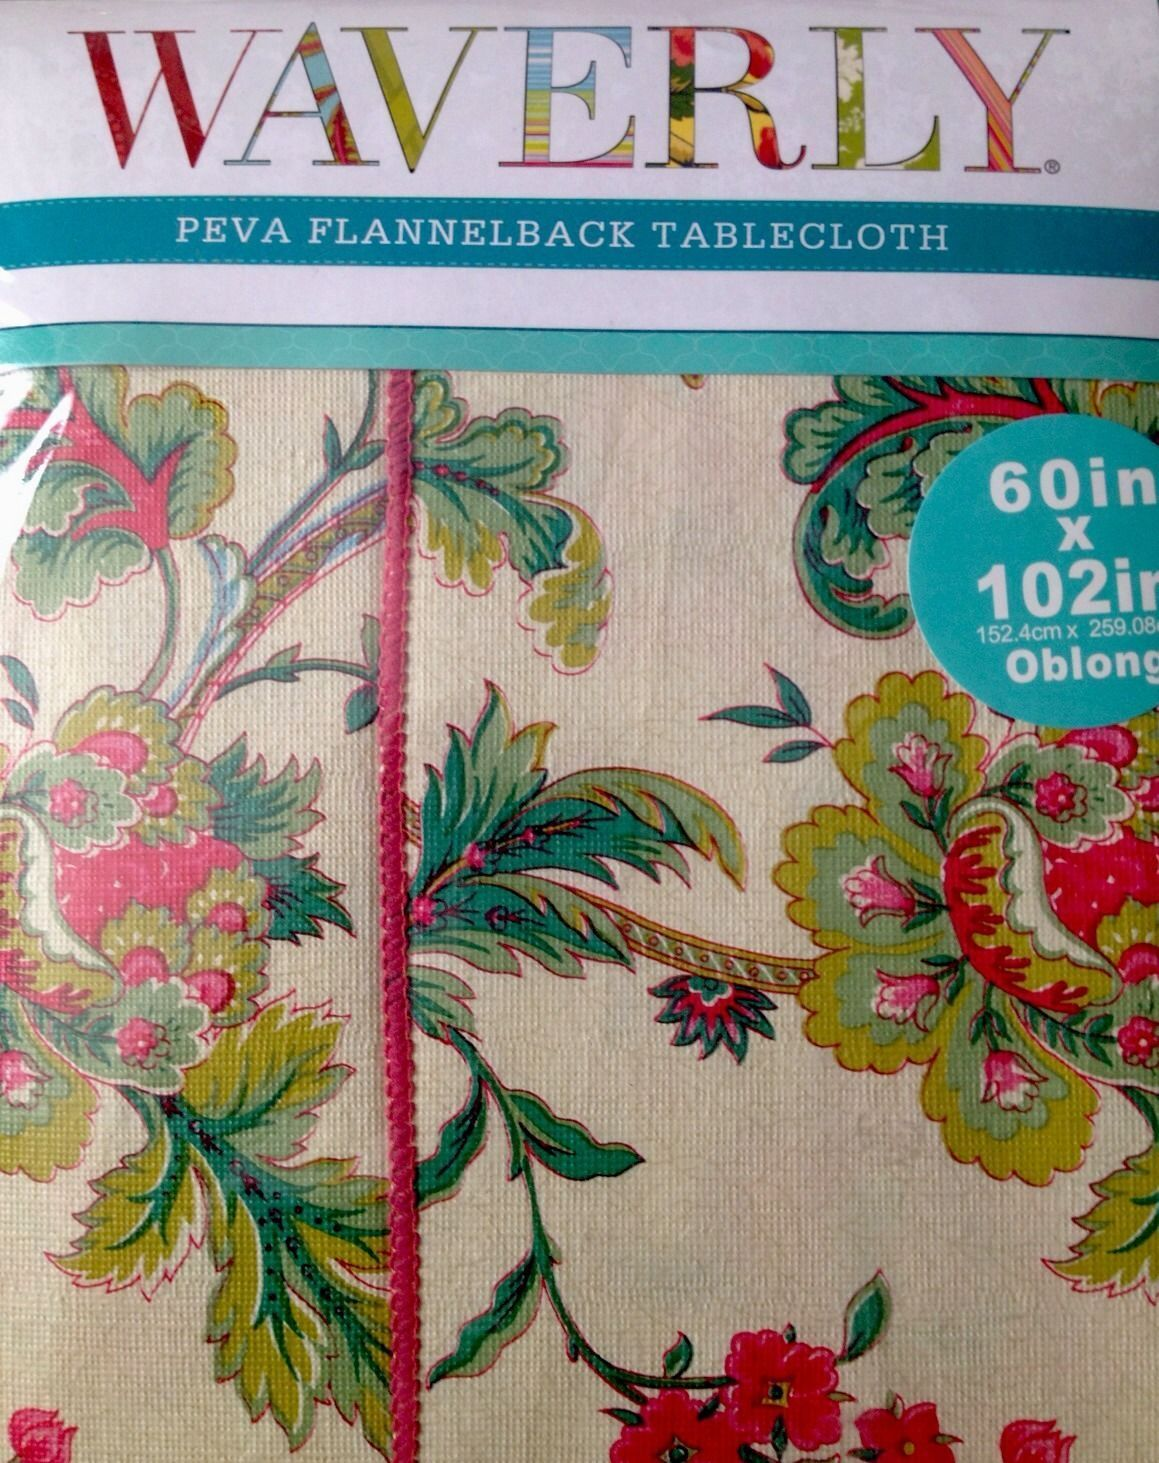 """WAVERLY PEVA Claremont Springs Tablecloth 60 x 102"""" Floral Vinyl Flannel back - Tablecloths"""